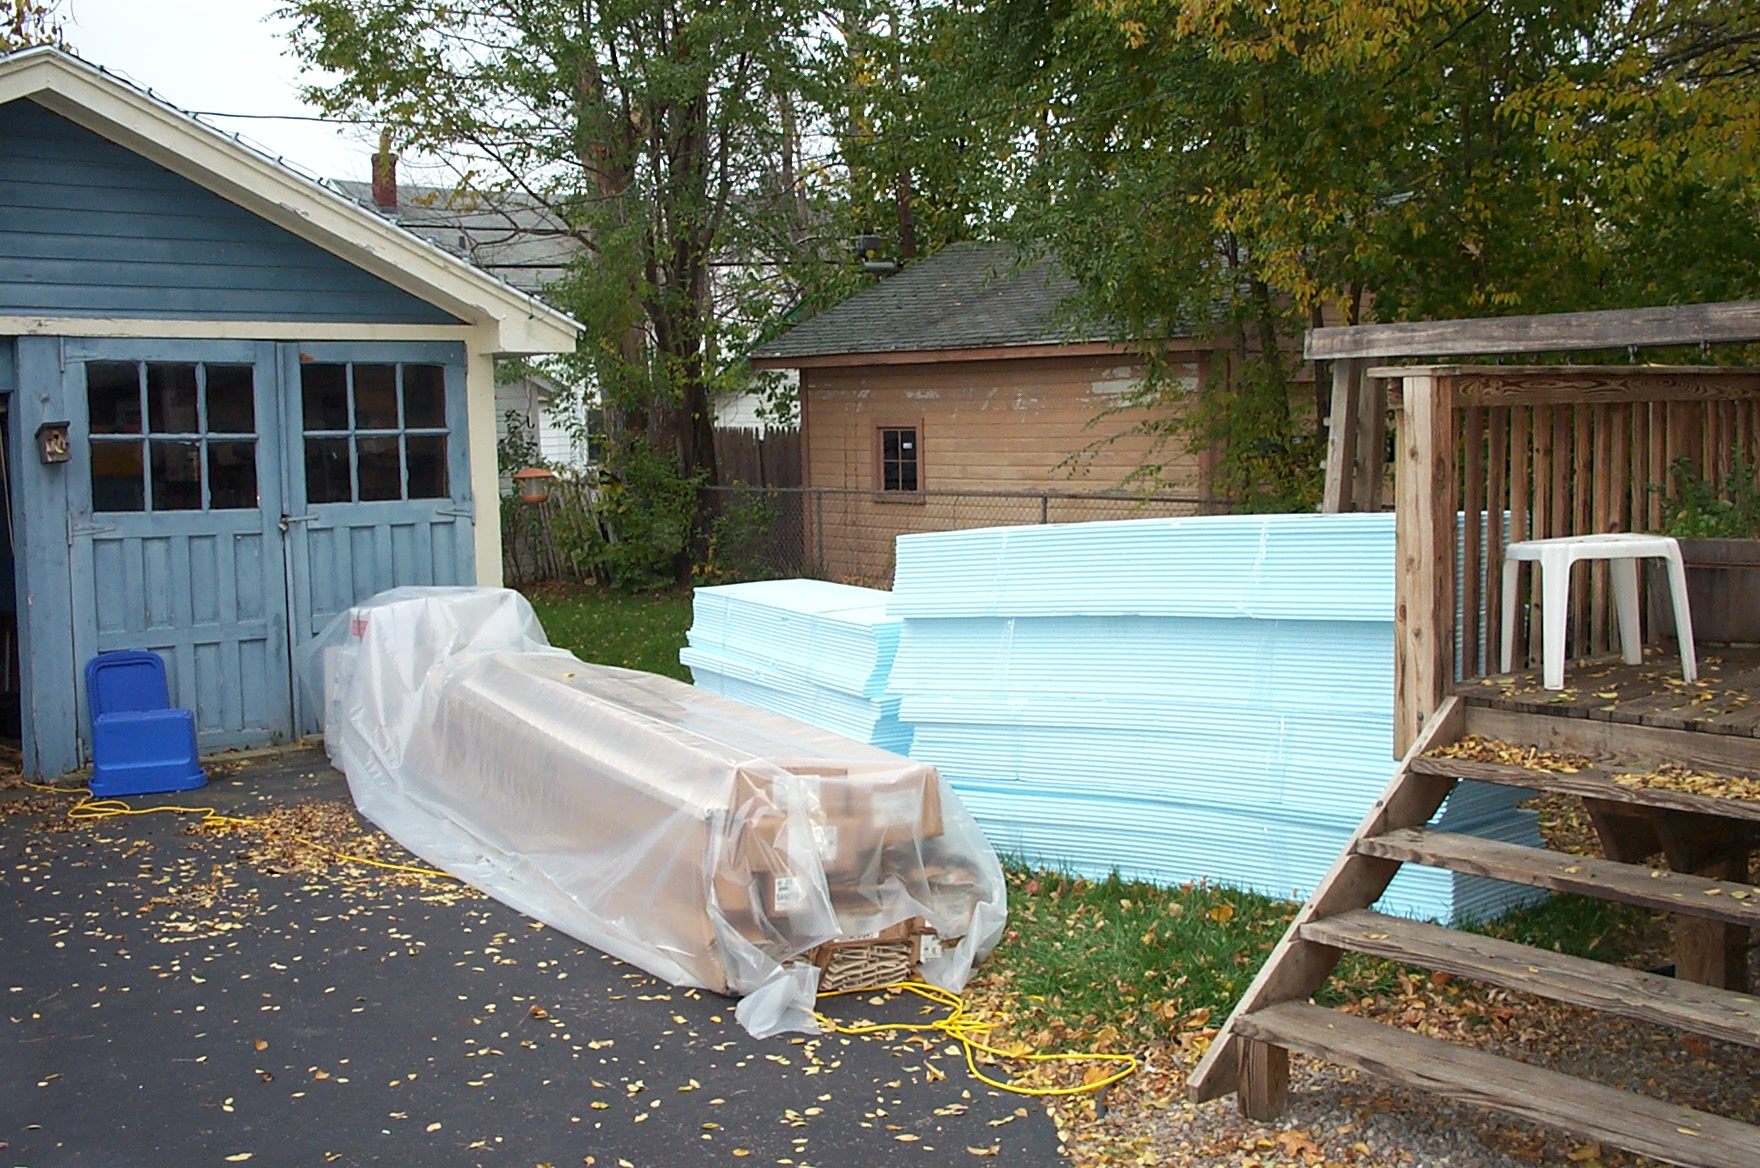 Truckload Of Materials For The New Siding